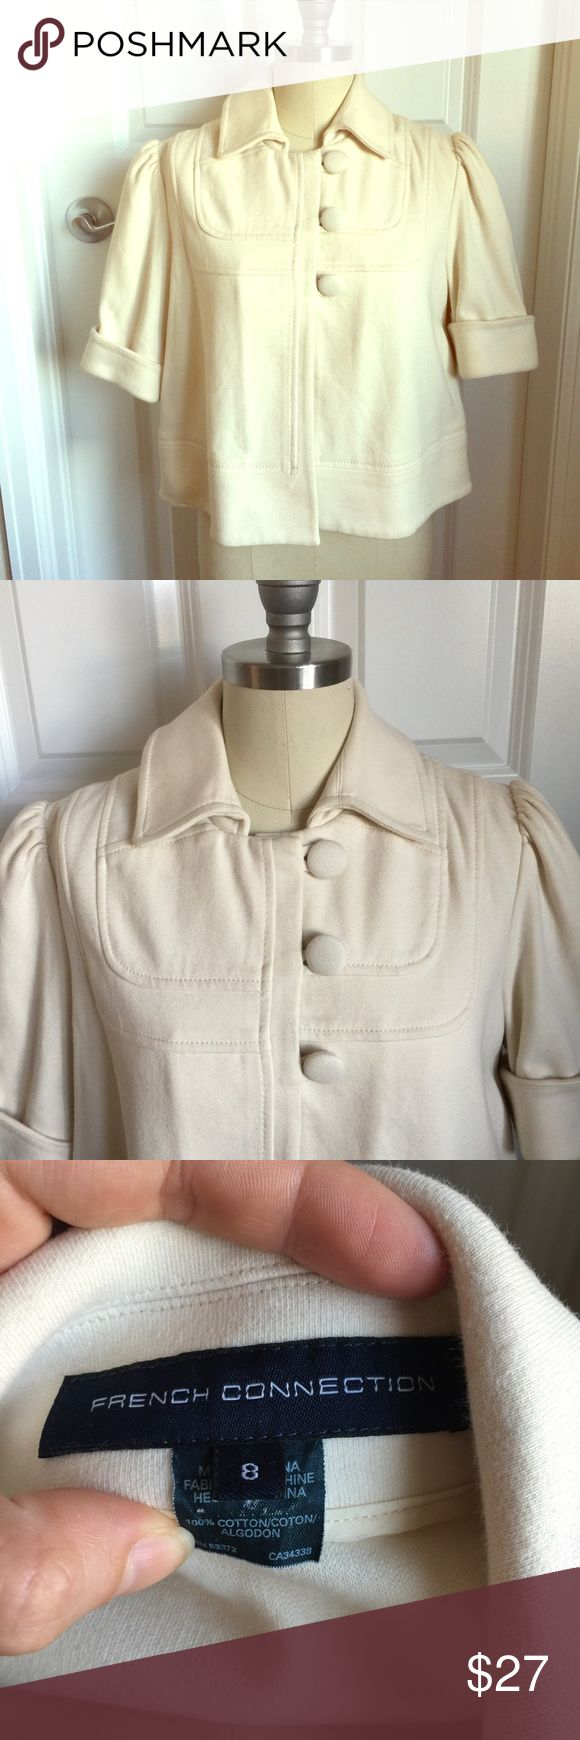 French Connection Cropped Cream Jacket Heavy cropped cream jacket by French Connection. In great condition! Can be worn open or closed for an extremely cute look! TSC3.5 French Connection Jackets & Coats Pea Coats